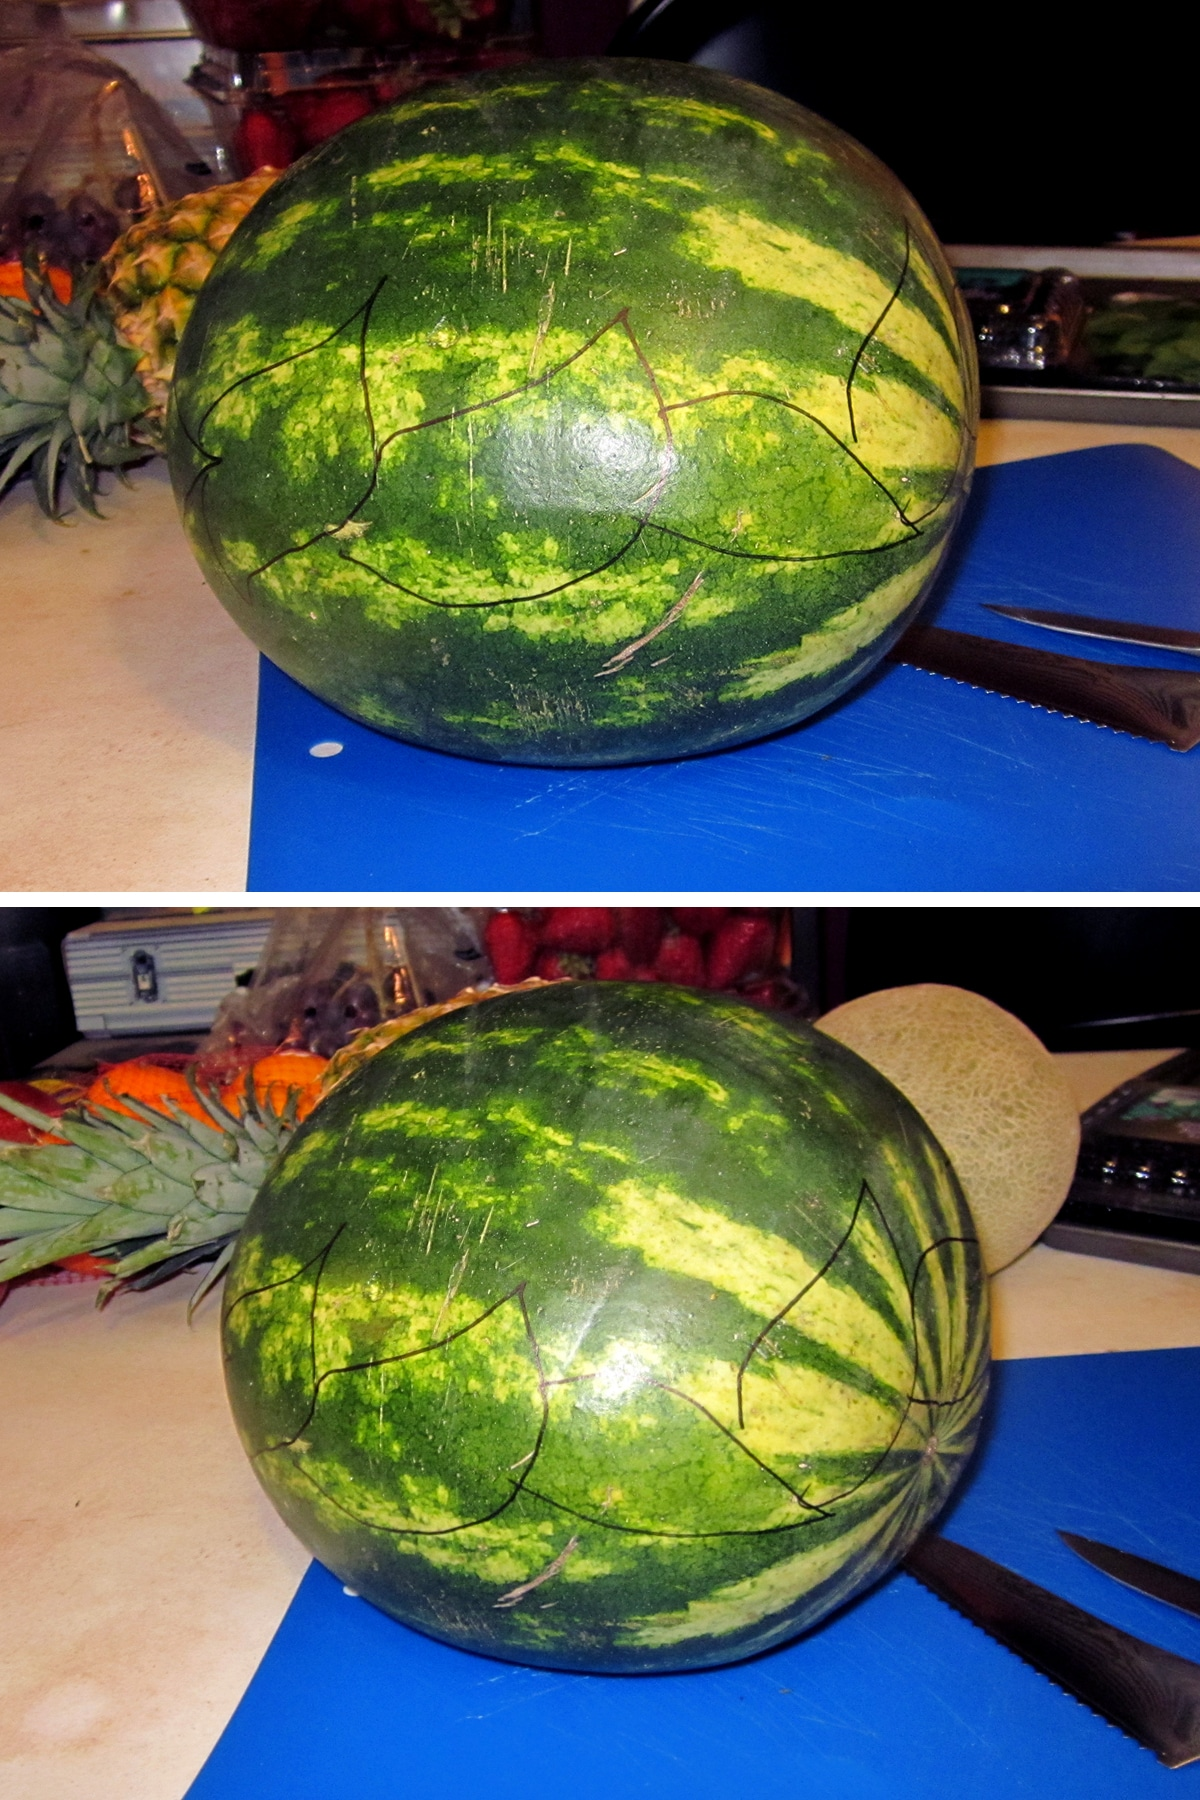 A leaf design is drawn on the watermelon with Sharpie markers.